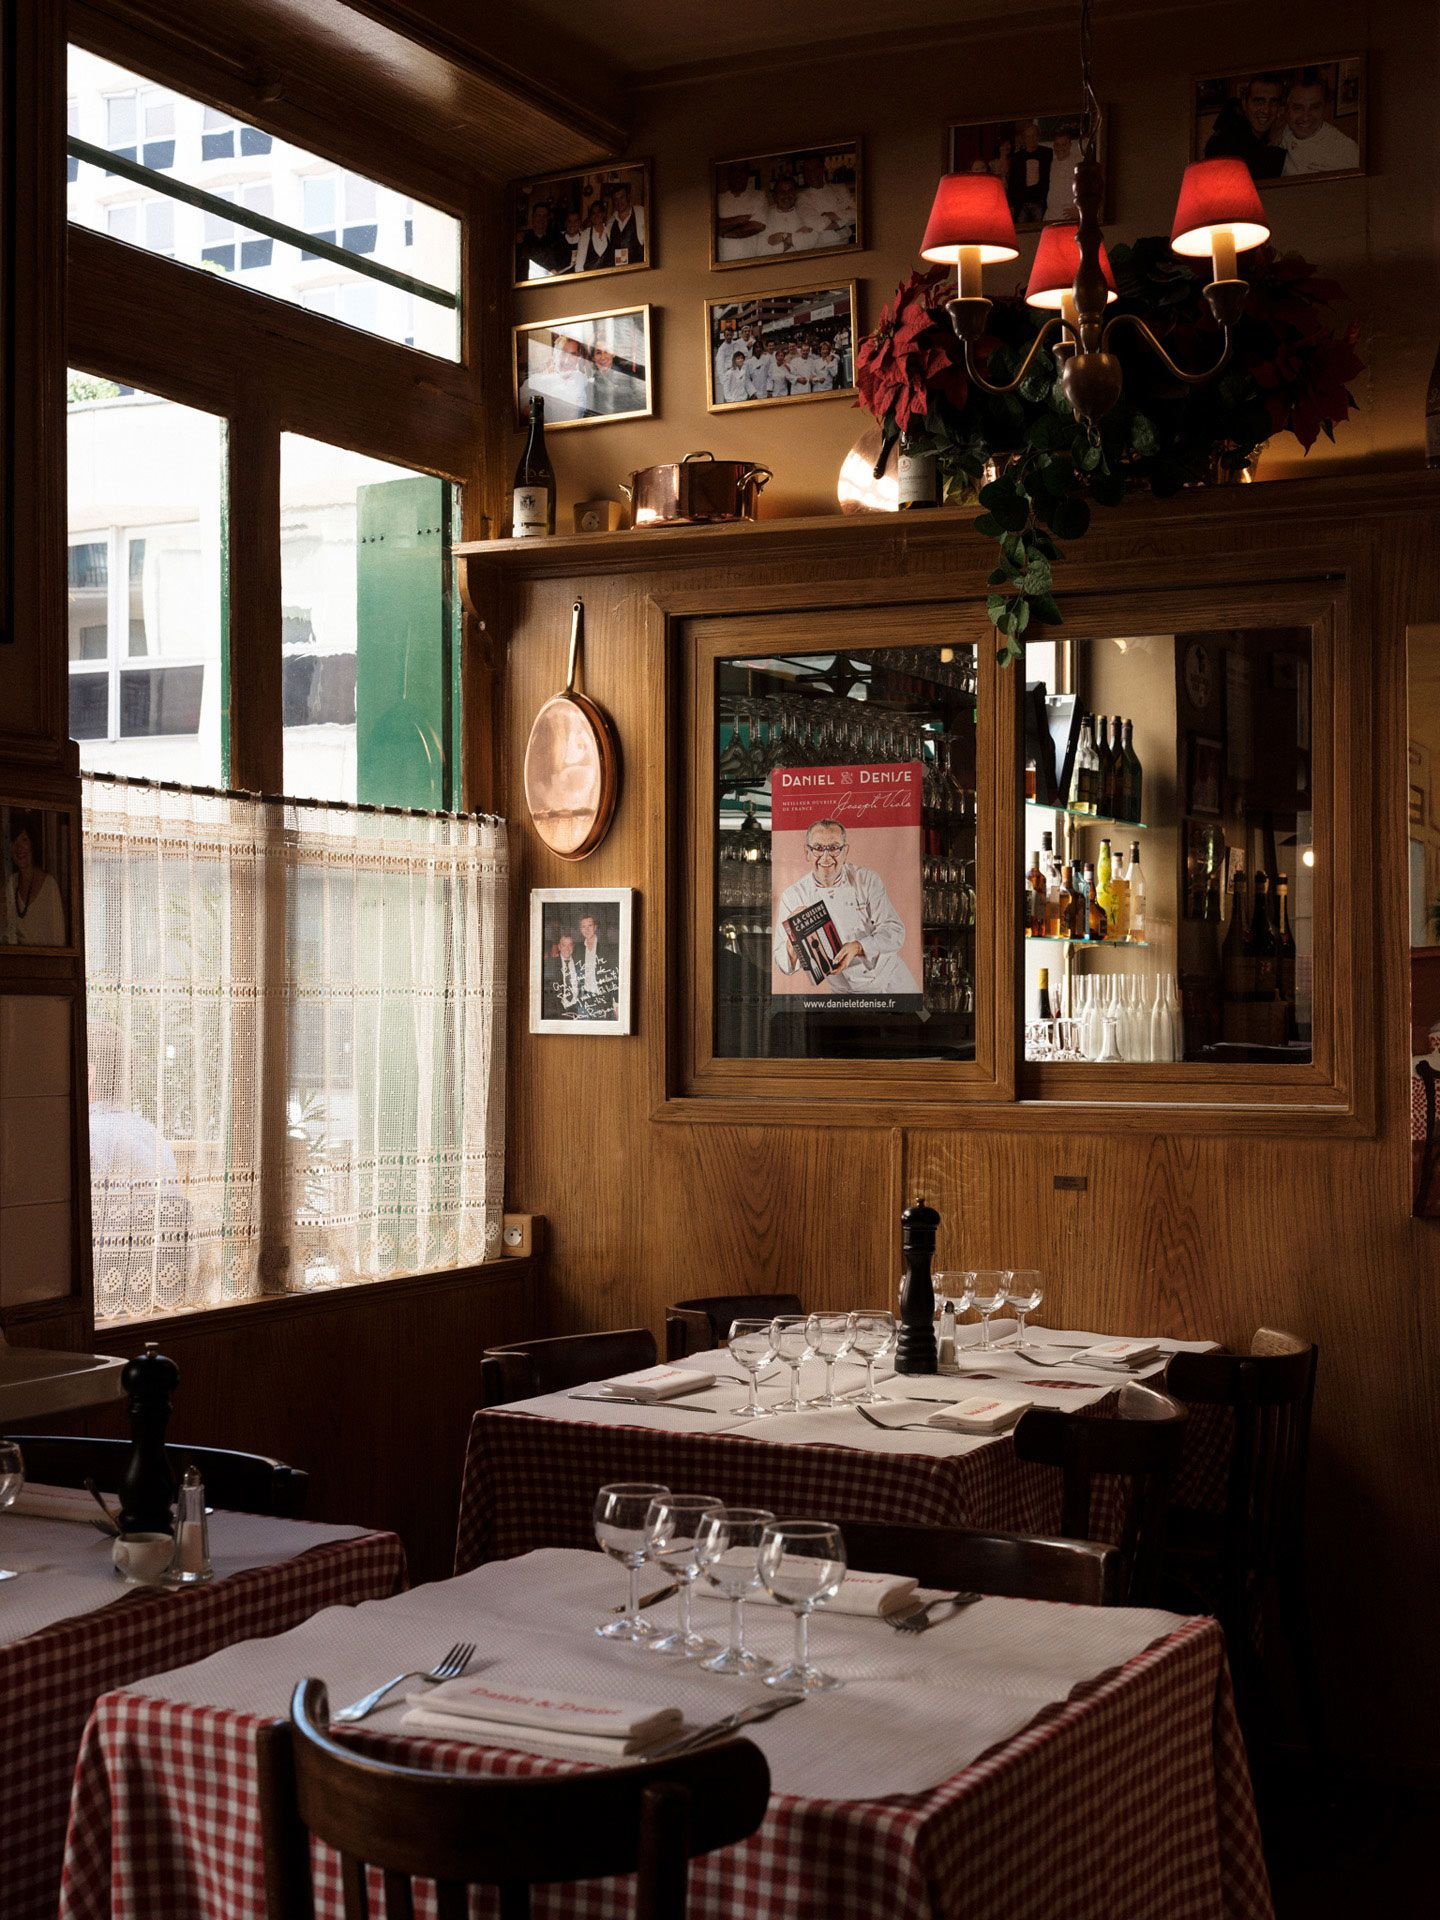 inside of a traditional french countryside restaurant with vichy tablecloth by Alexi Hobbs in Auvergne for Reflets de France